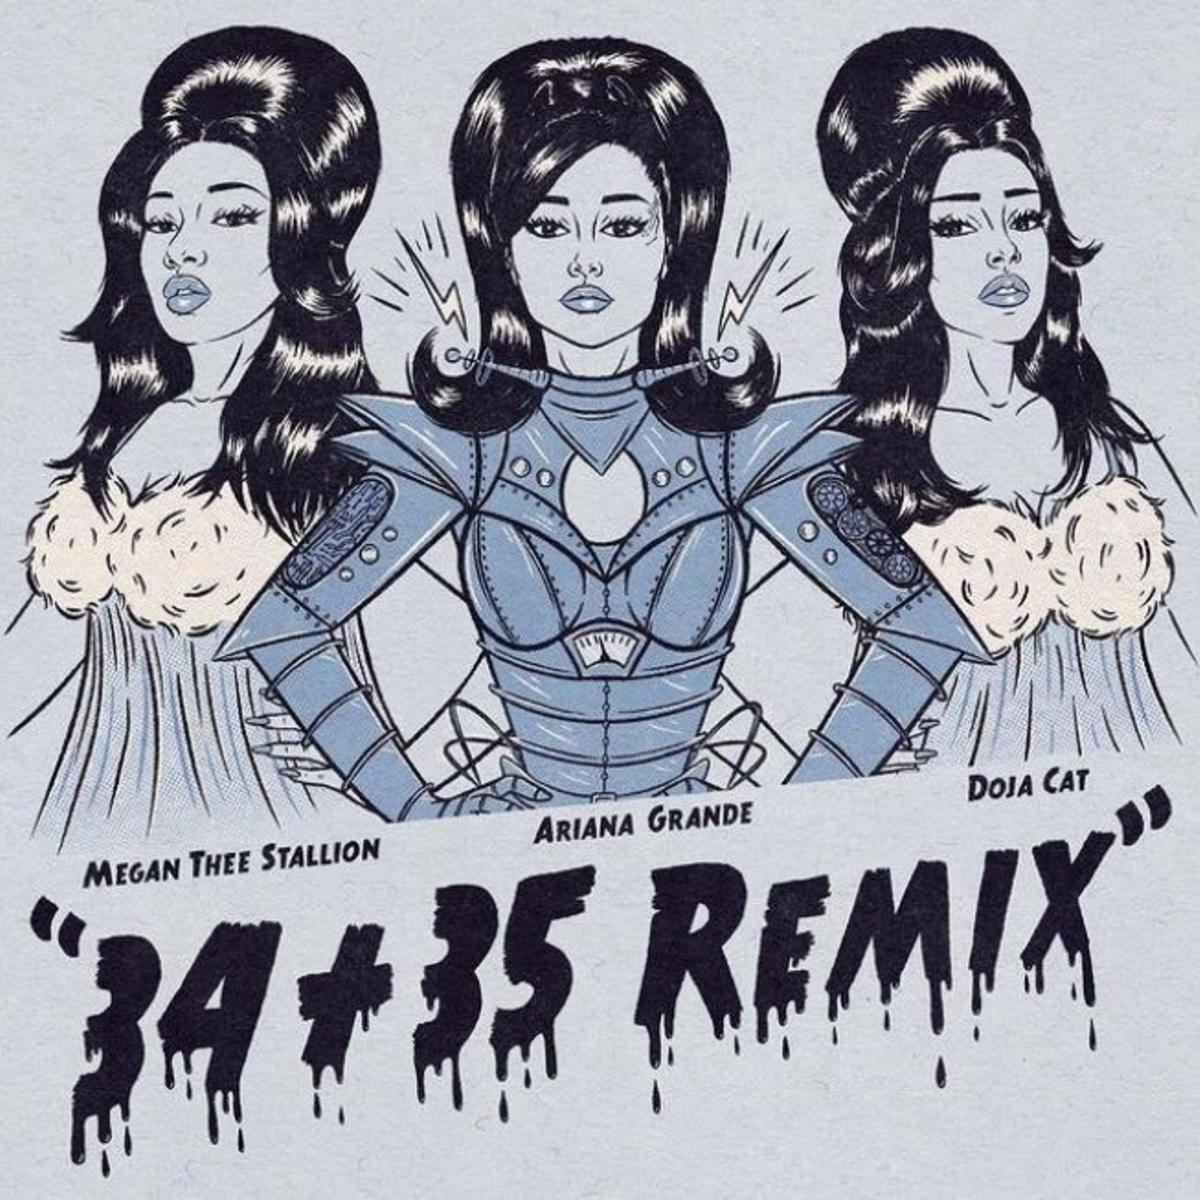 Ariana Grande - 34+35 (Remix) Ft. Megan Thee Stallion & Doja Cat